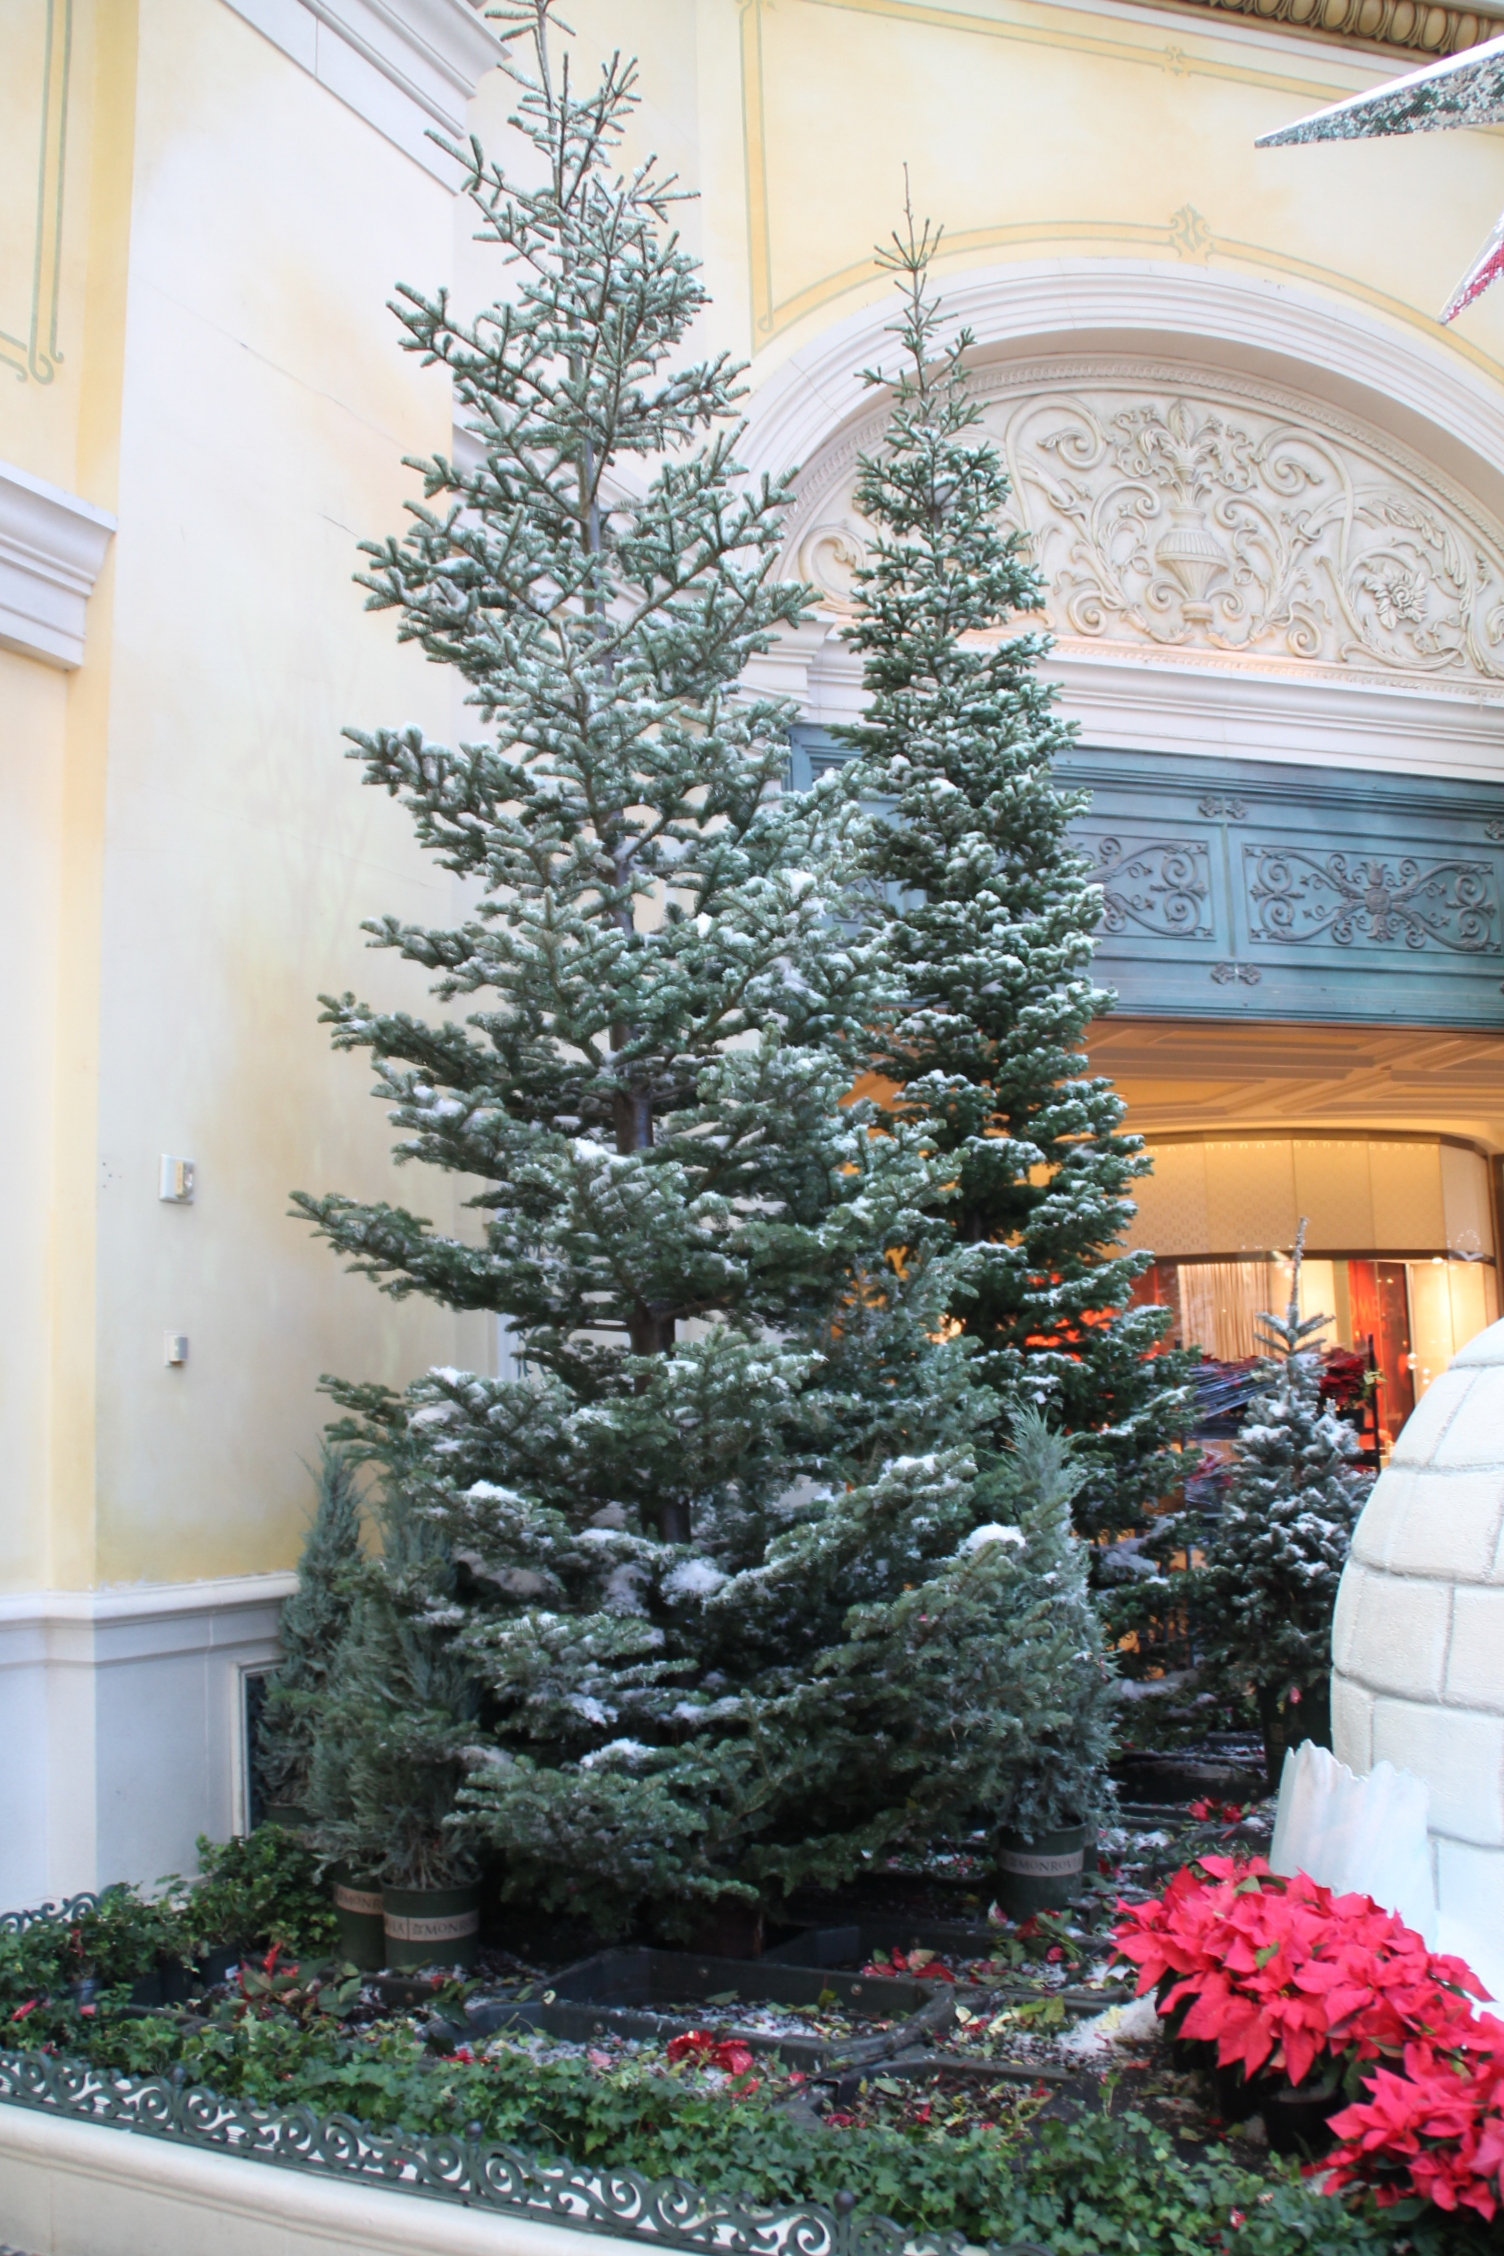 Bellagio Conservatory Christmas Trees With